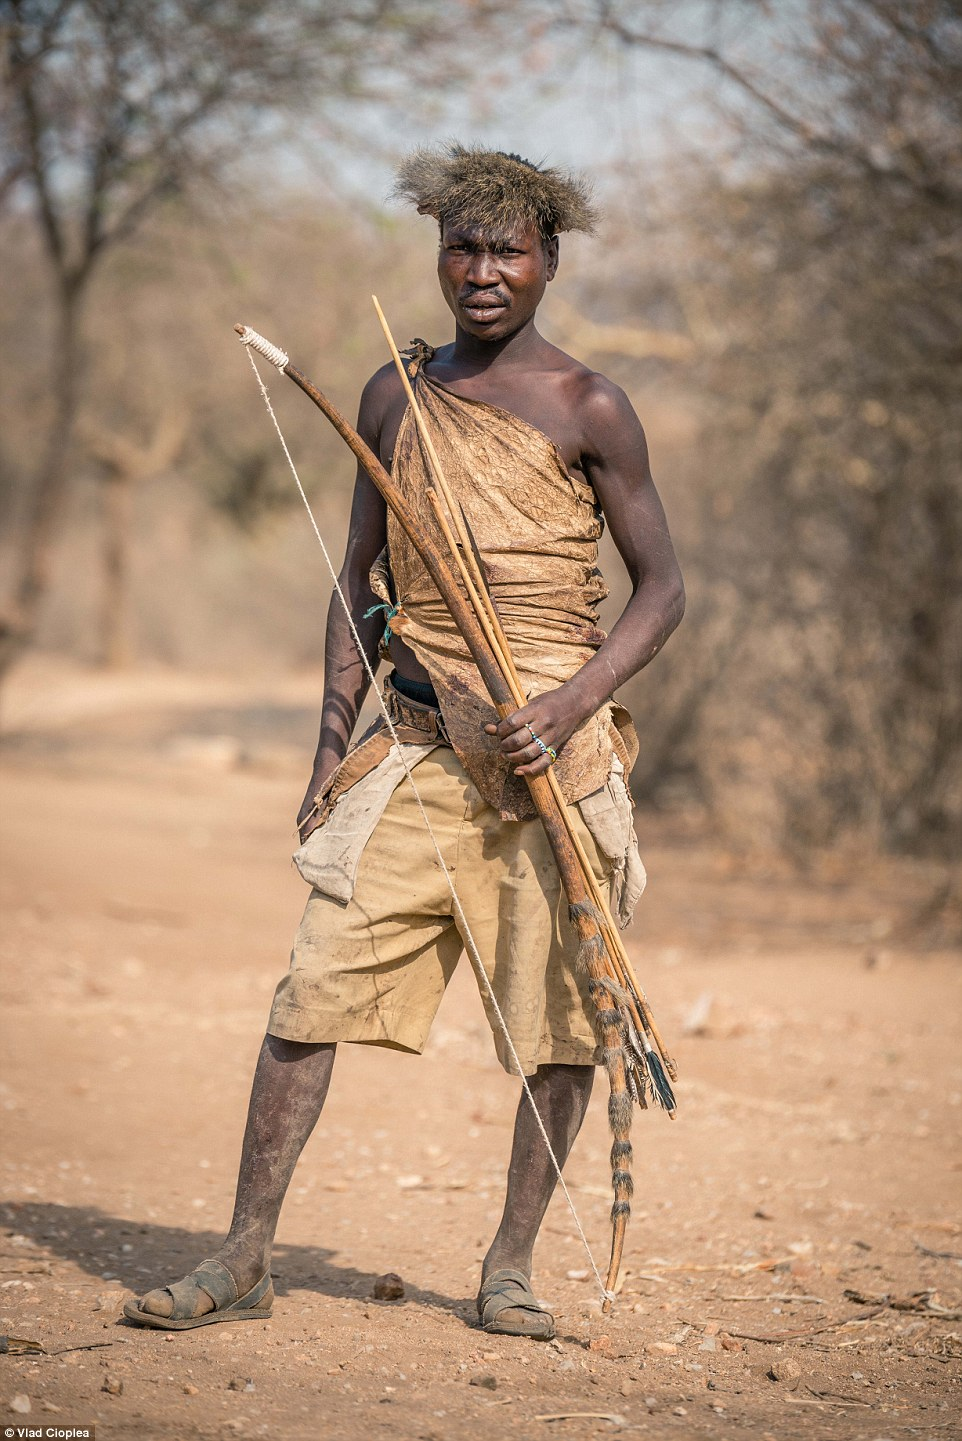 Another group Cioplea met was the weed-smoking Bushman tribe, who taught the photographer their incredible hunting techniques. Pictured is one of their hunters near Lake Eyasi